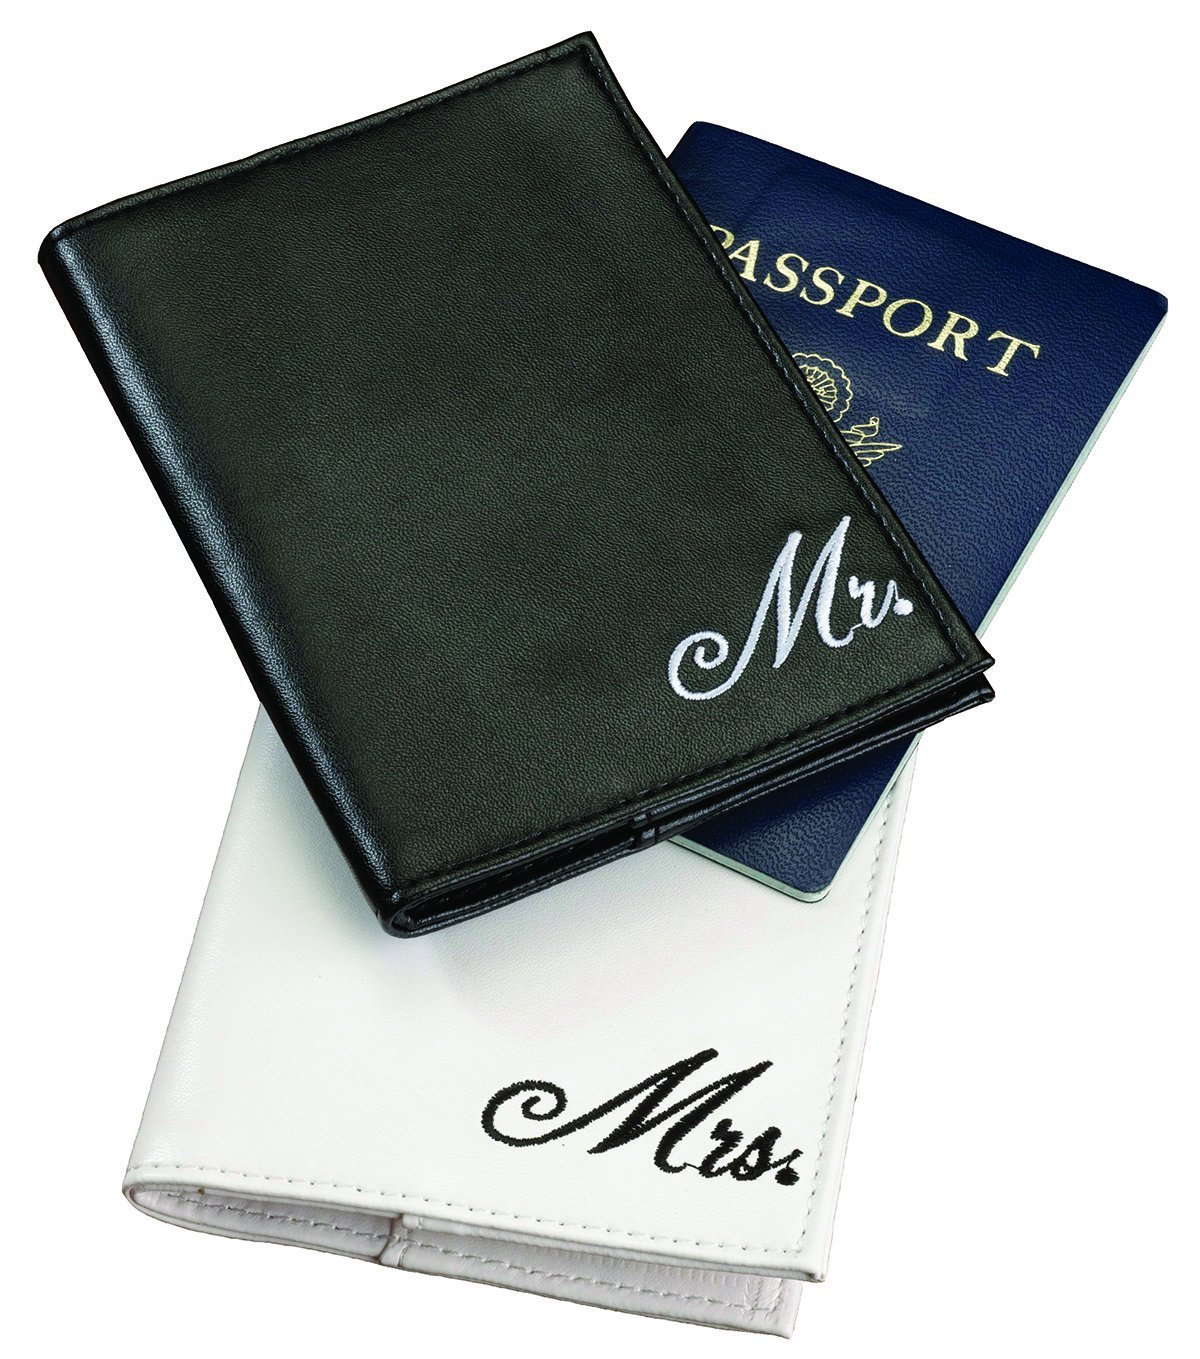 passport covers | wedding gifts for travel couples